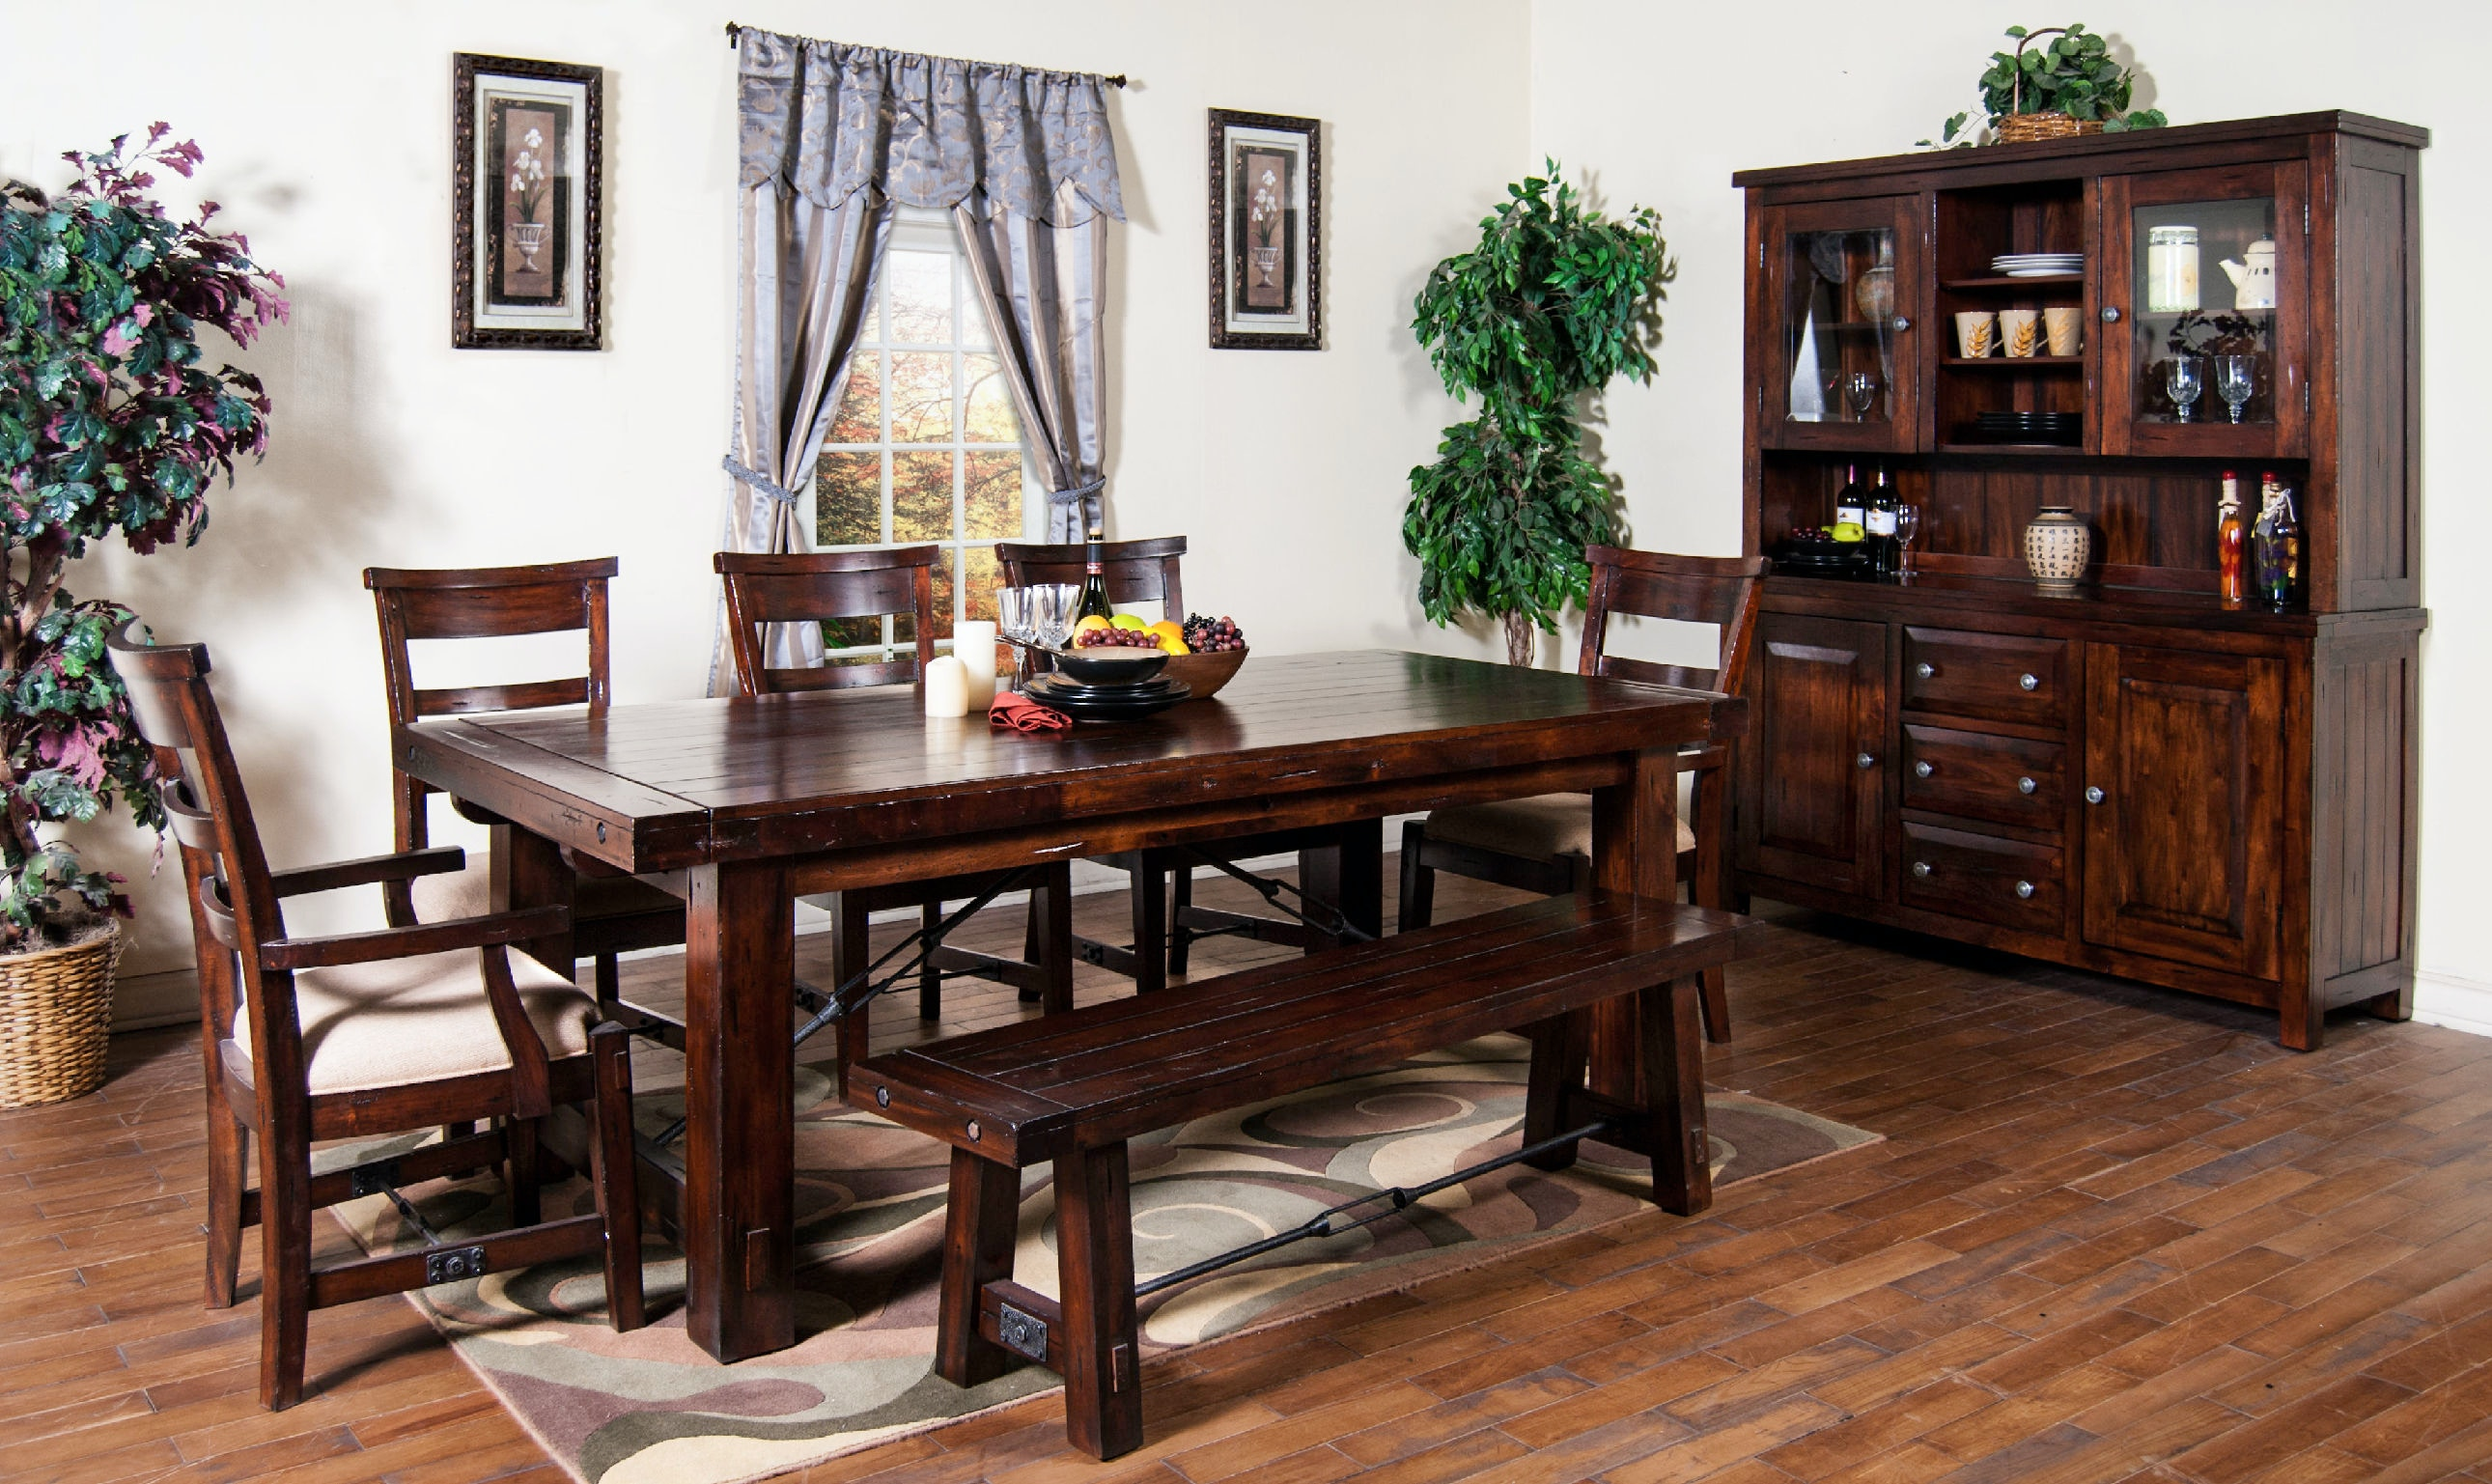 Sunny Designs Dining Room Bench 1615RM Eastern Furniture  : 1316rm2c1604rm2c1605rm2c1615rm2c2428rm 2 from www.easternfurniture.com size 1024 x 768 jpeg 104kB